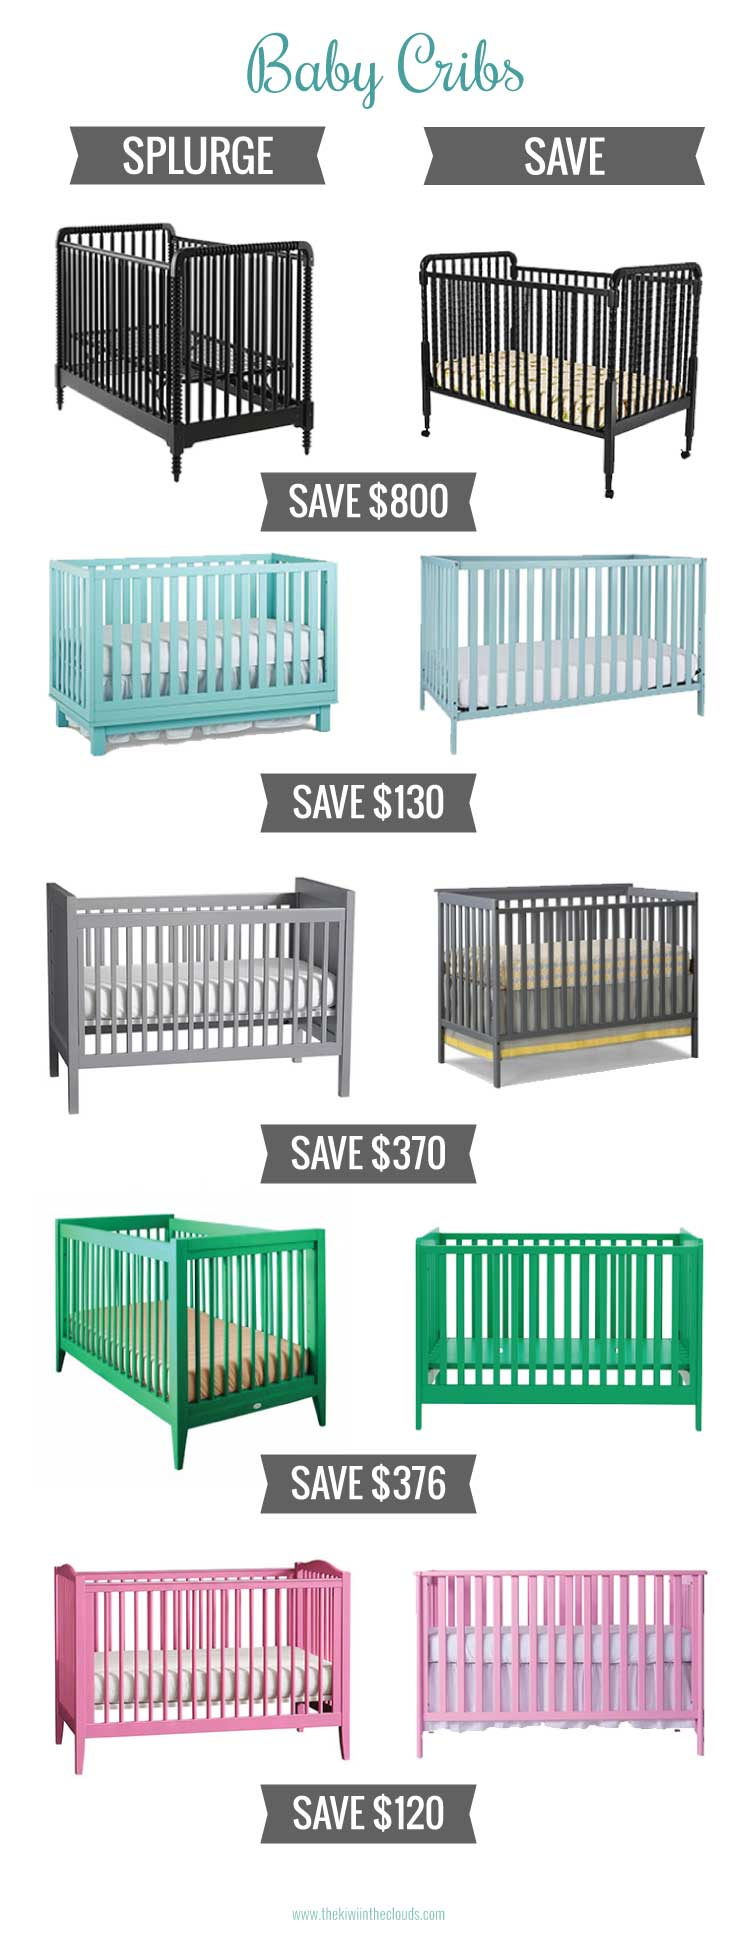 Worried about the cost of setting up a nursery? I was too, but I'm so glad I found this post!! Literally almost identical cribs for your baby that save you hundreds of dollars!!!!! Yes, please!